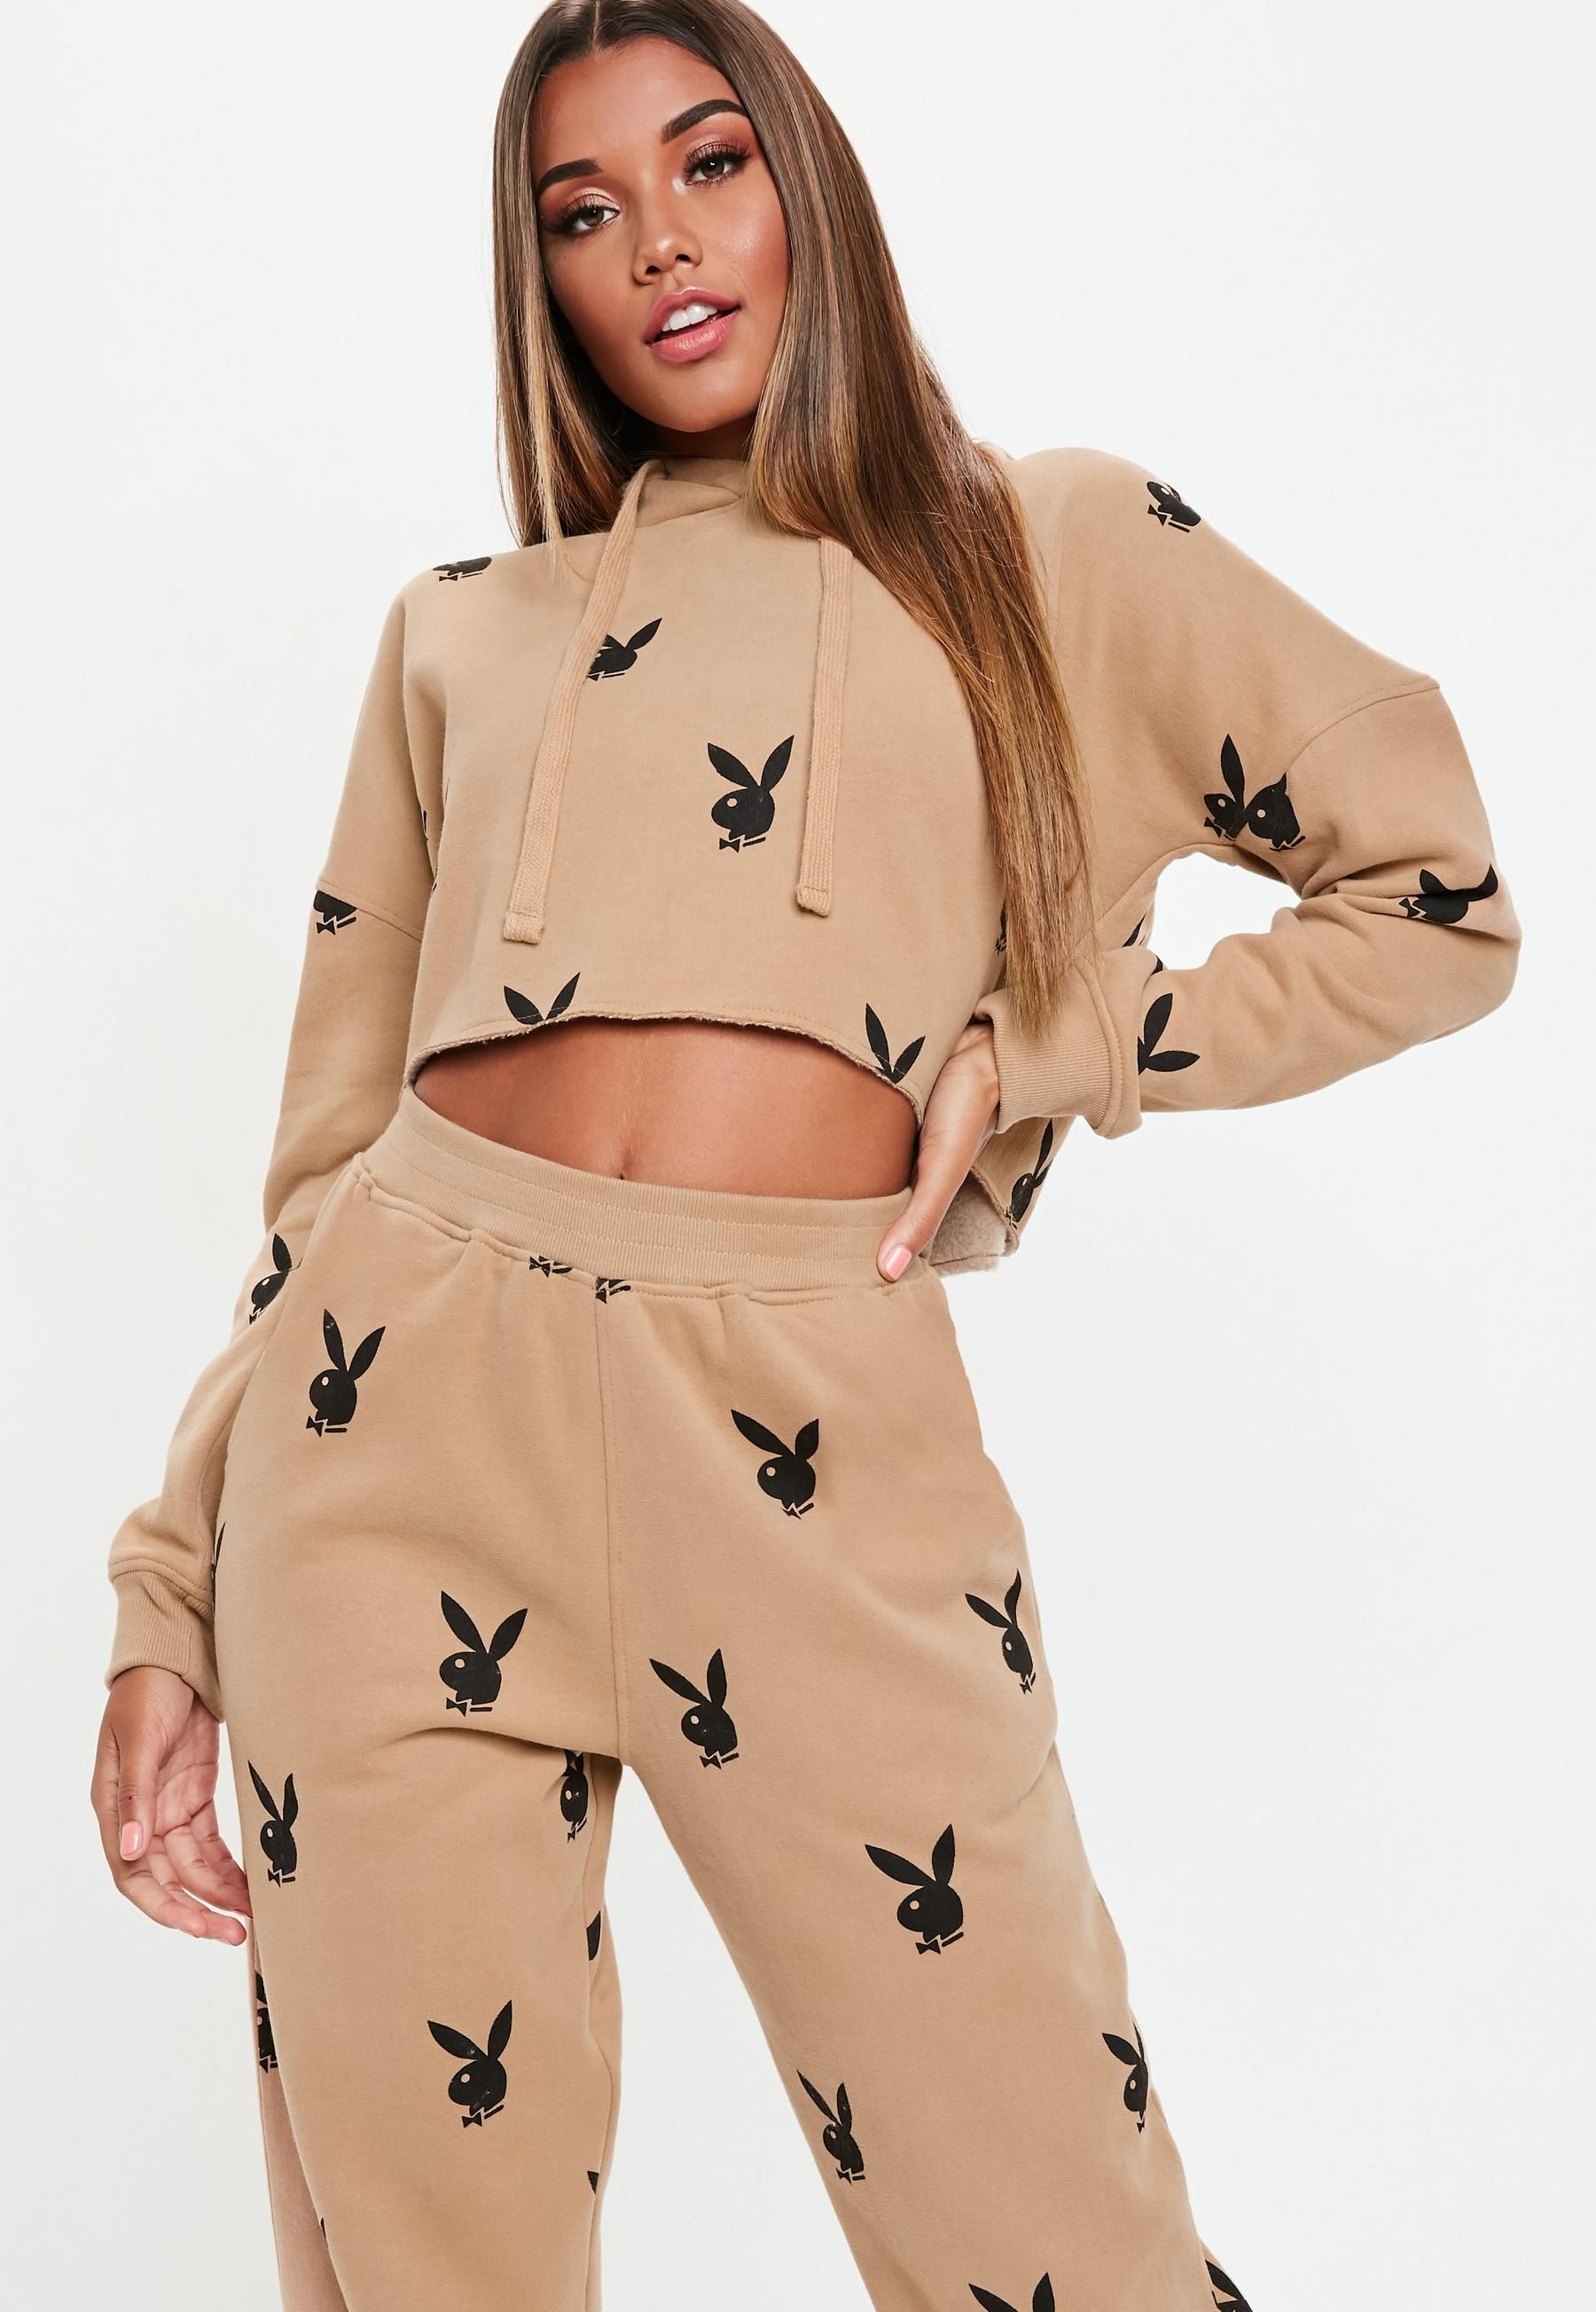 Playboy x Missguided Tan Playboy Repeat Print Cropped Hoodie in 2018 ... c1ba7c5a2